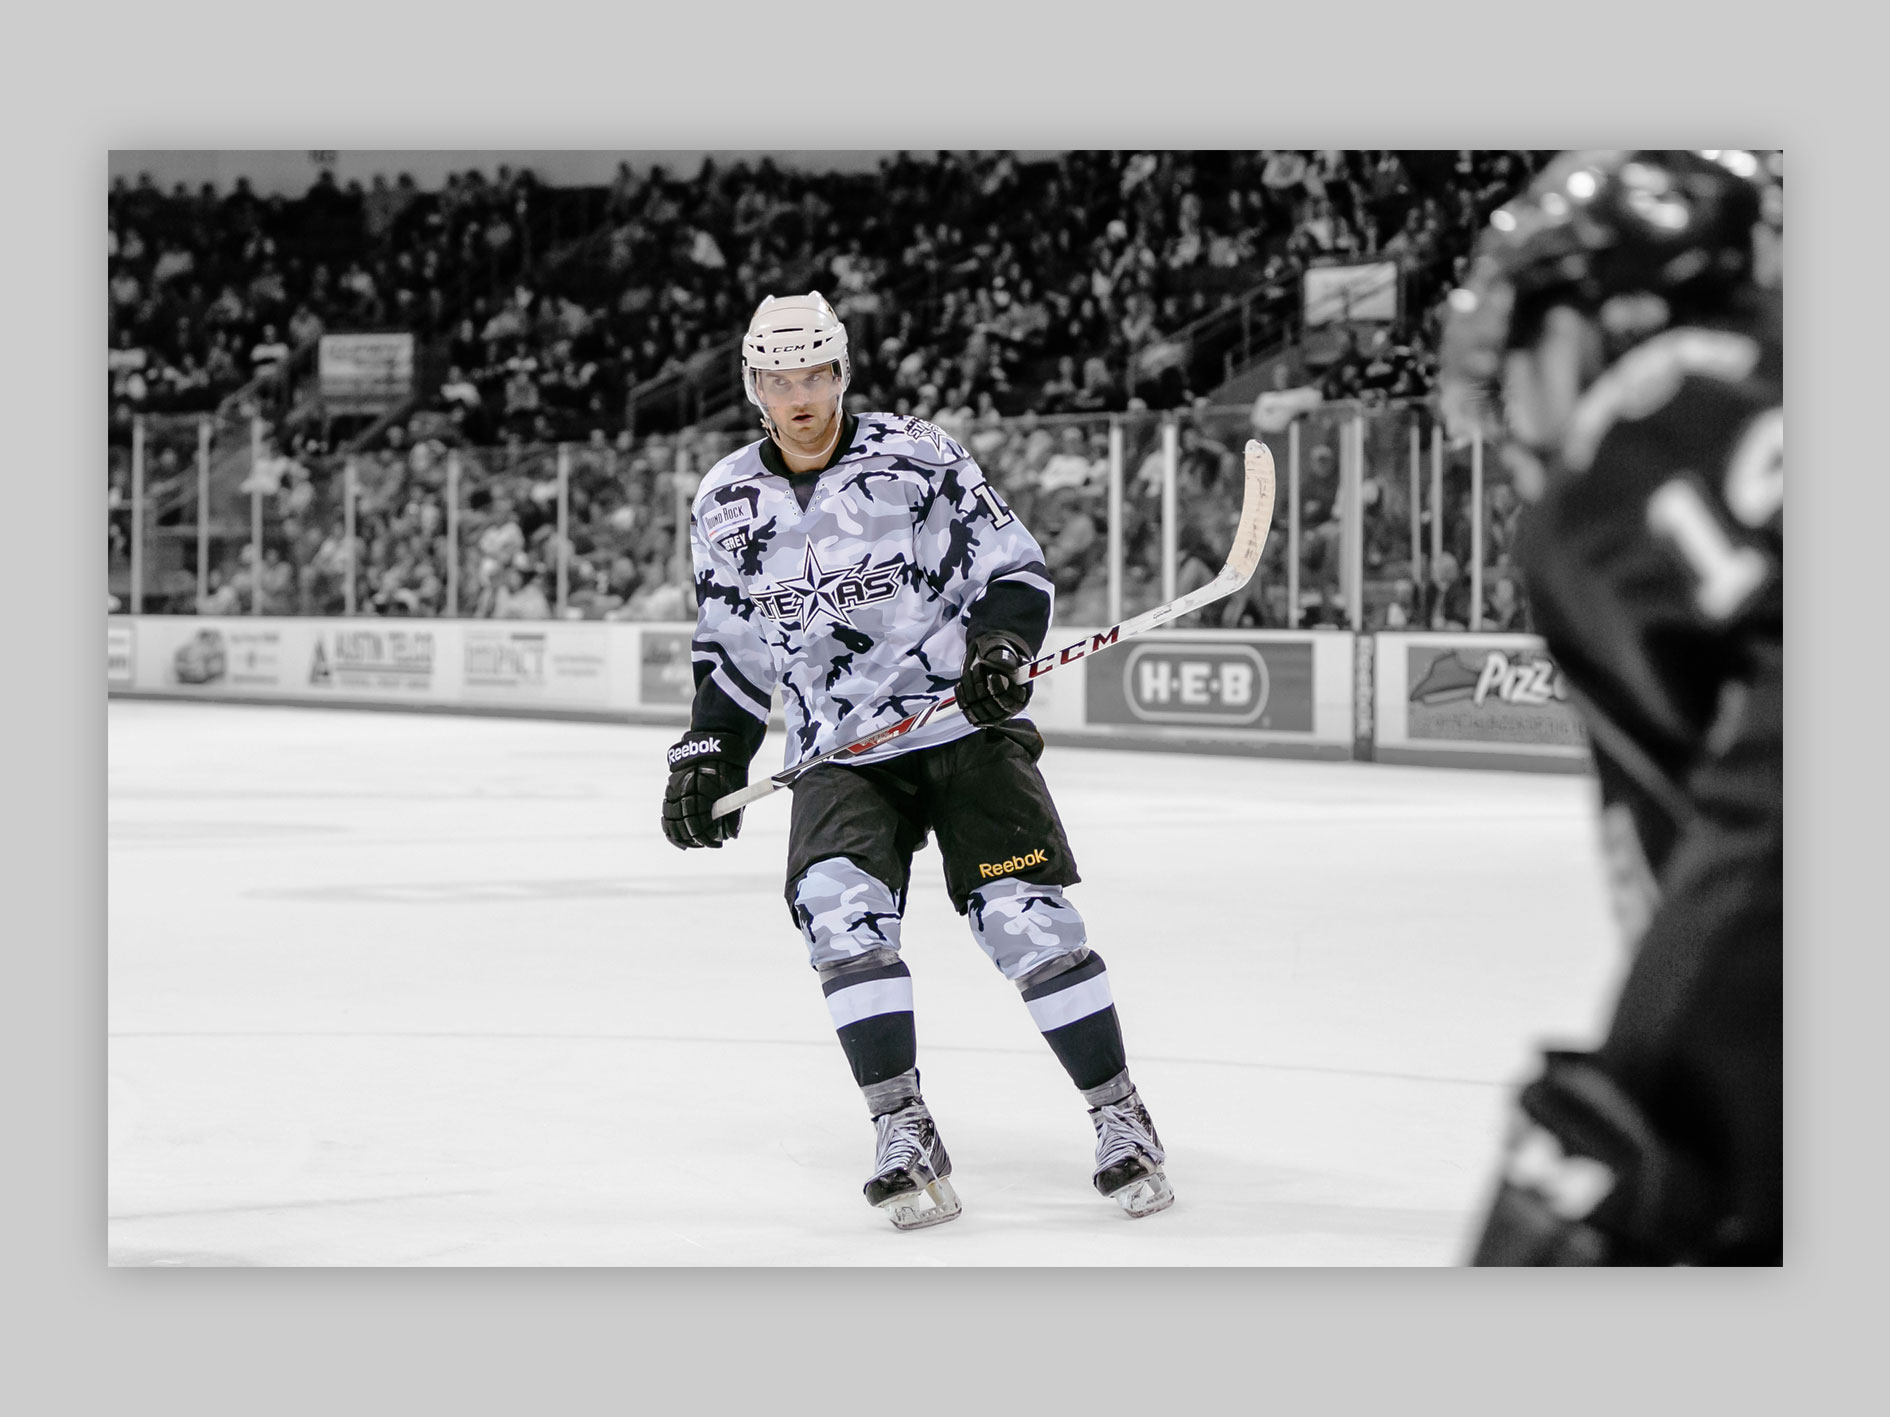 Military Appreciation Weekend specialty jersey, featuring black and white camouflage.